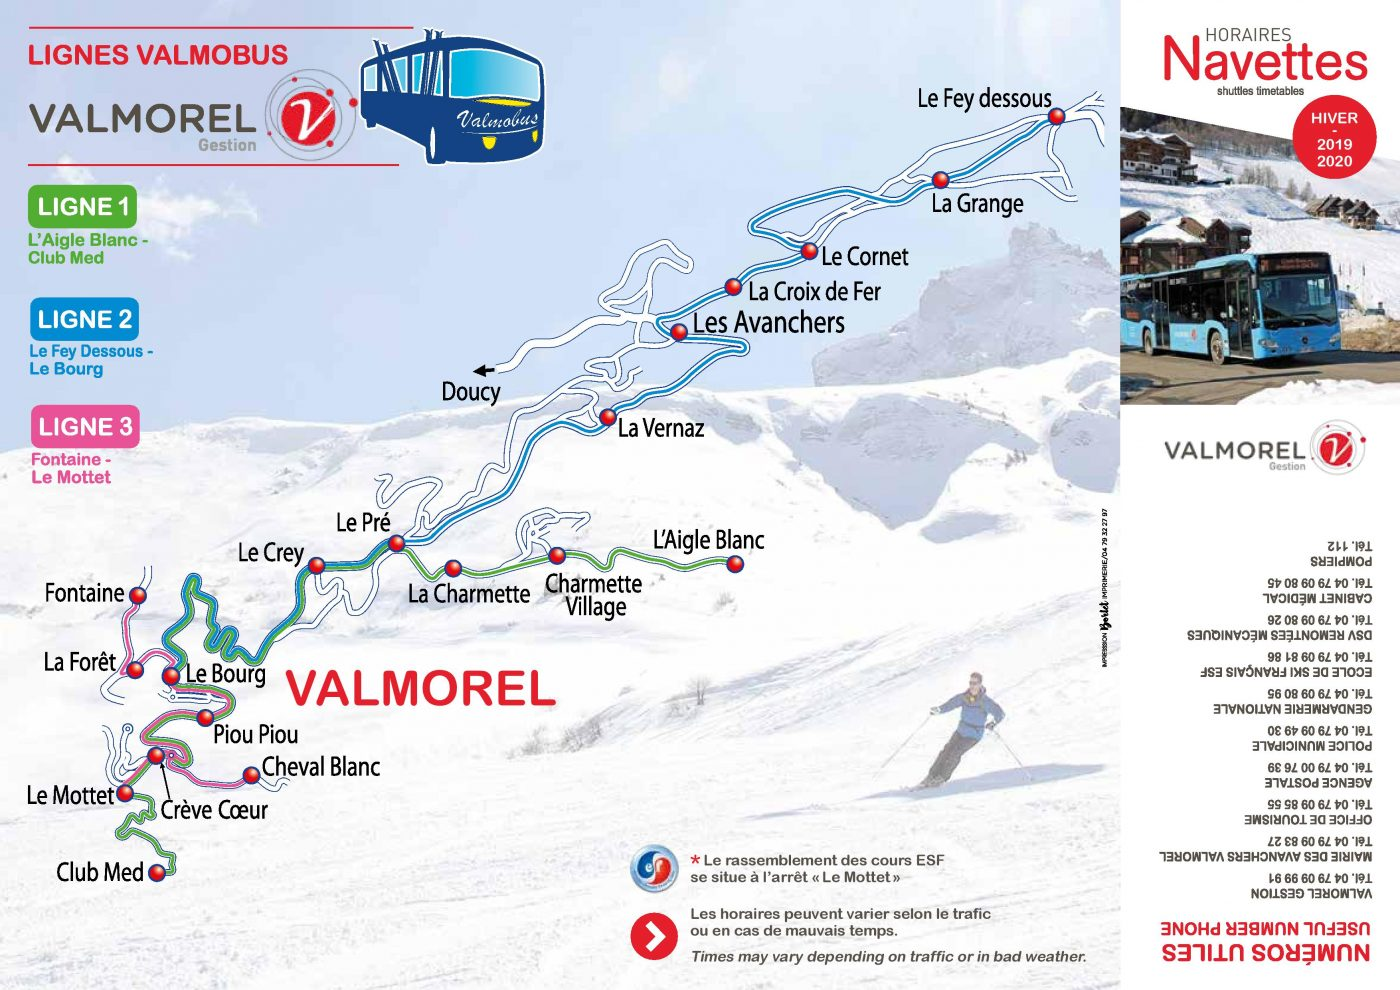 Horaires navette valmobus hiver 2019 2020 2